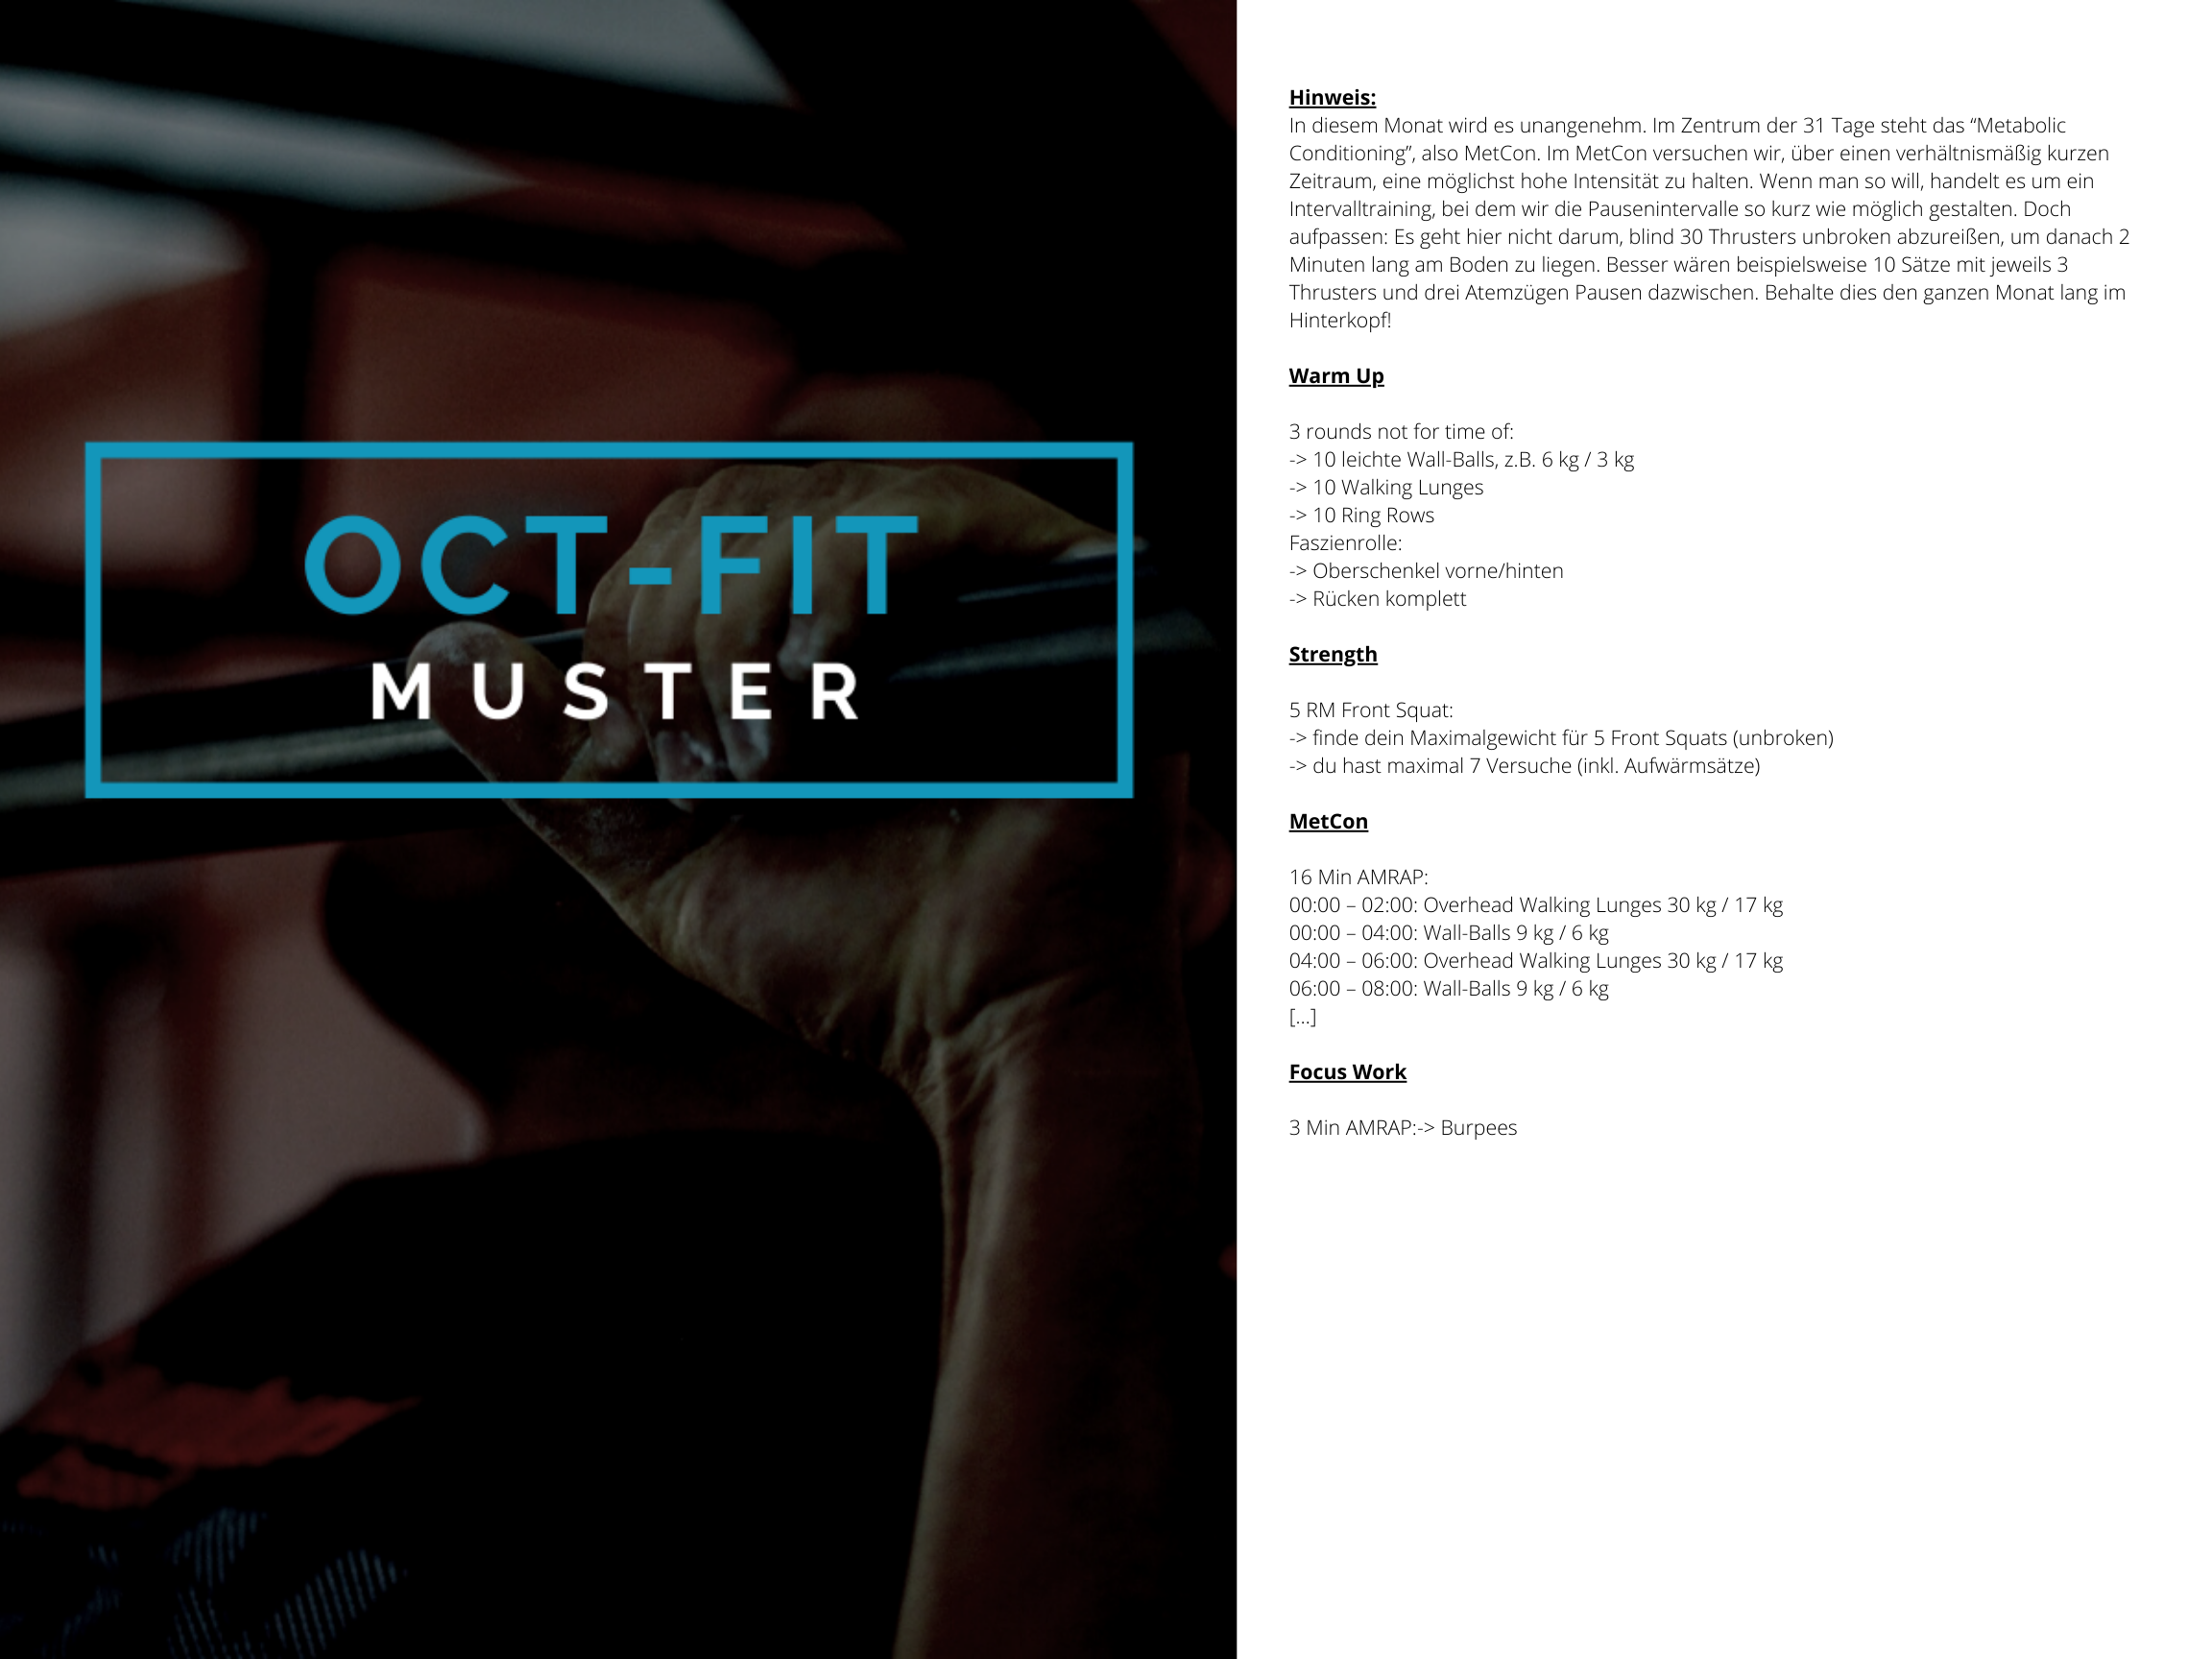 OCT-FIT Muster WOD 1